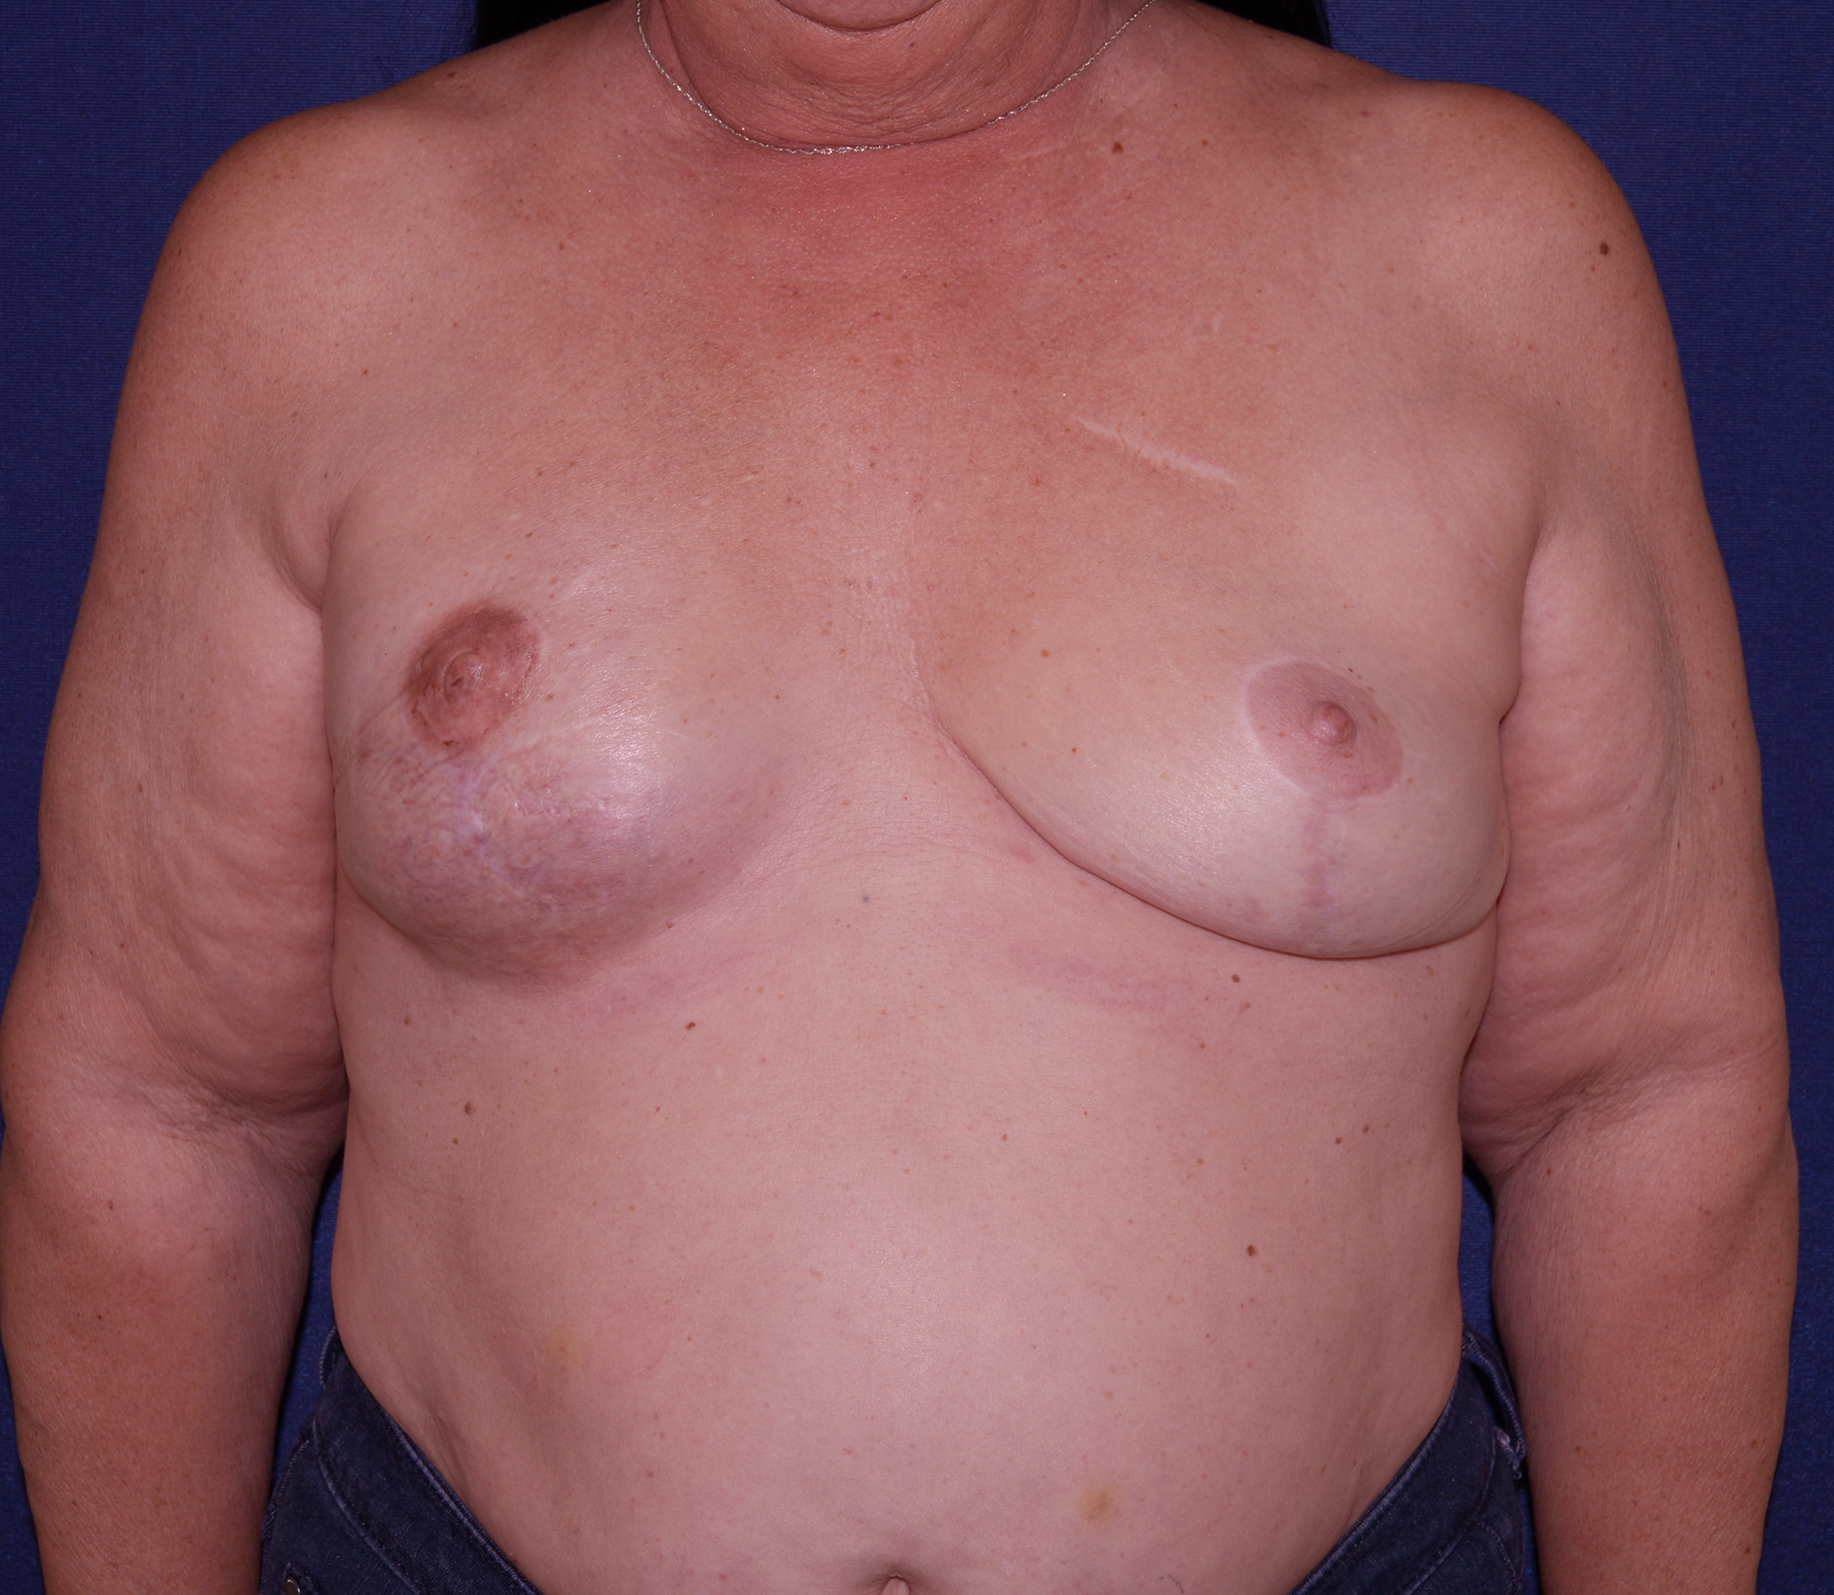 Valuable breast reconstruction after radiation excellent, support